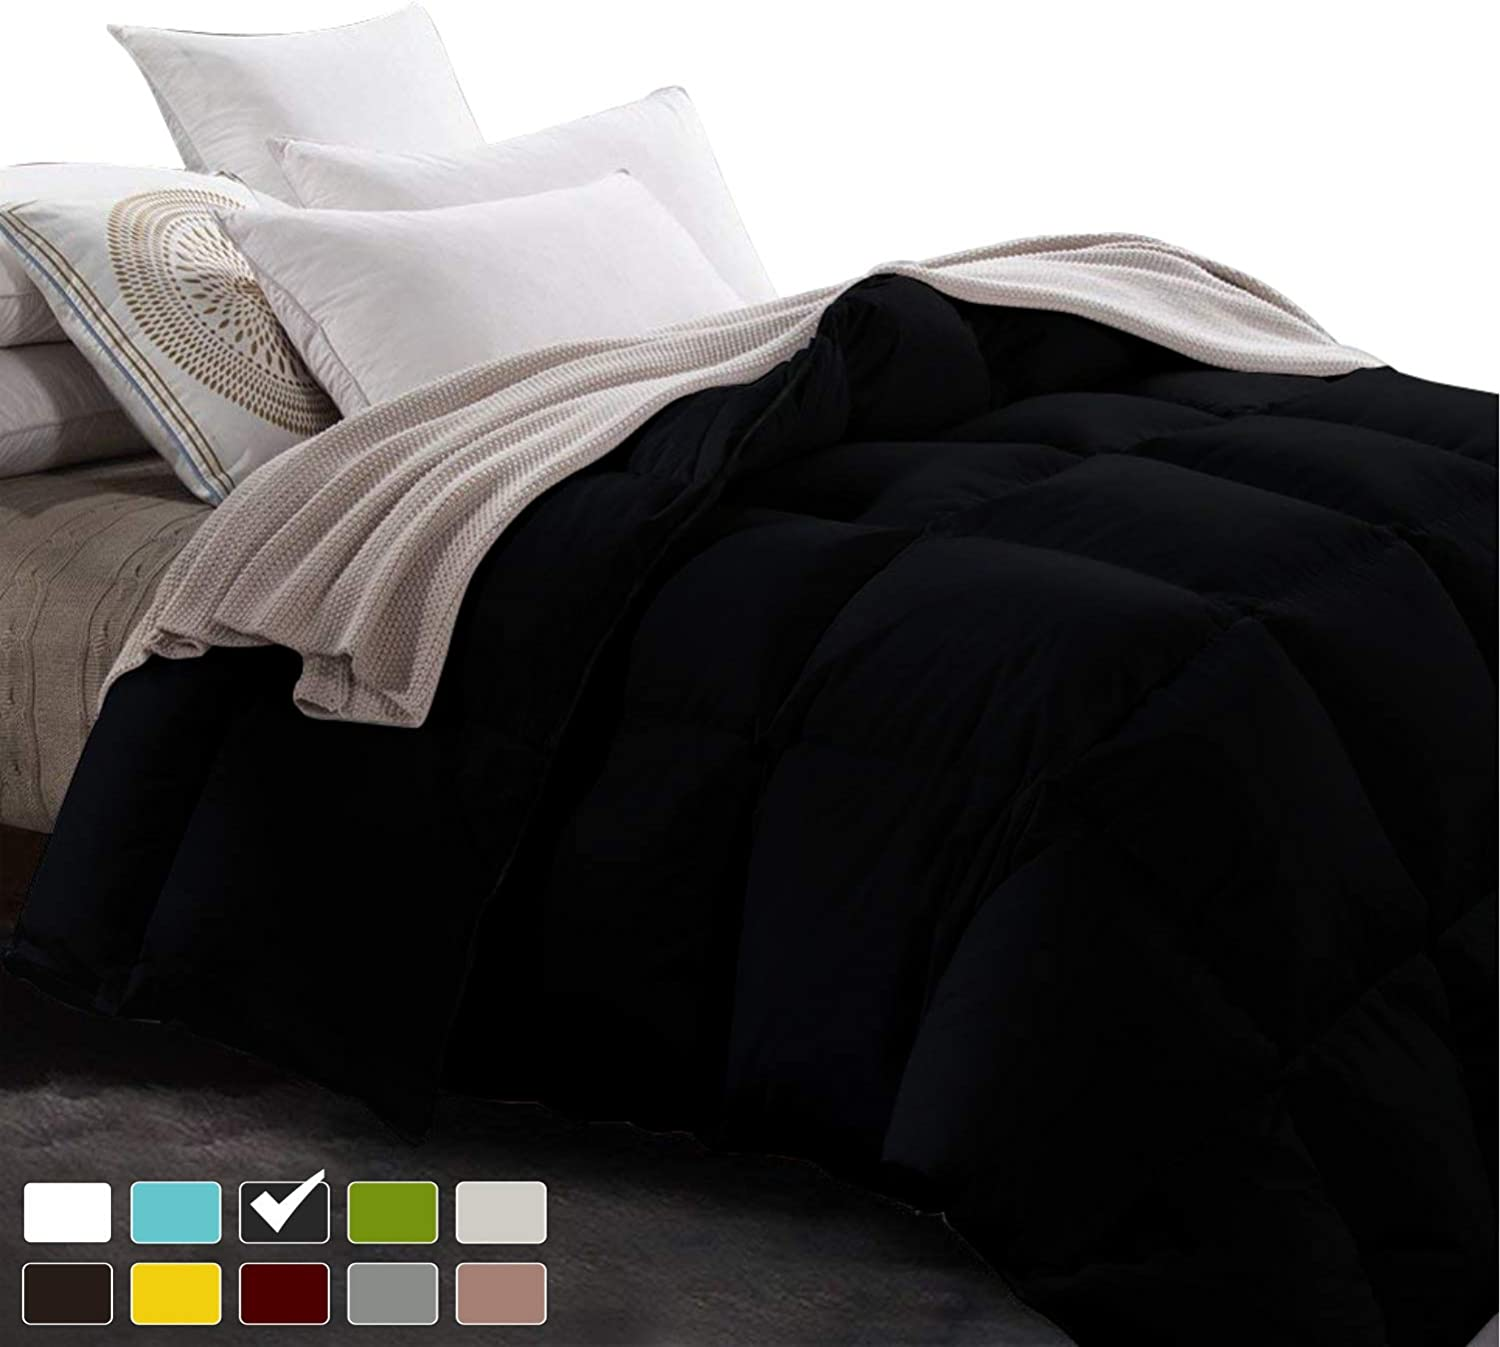 Luxury 800TC Egyptian cotton Comforter 500 GSM,Ultra-Soft, Plush Fiberfill All Season Comforter with Corner Tab & 4 inch hem Box stitched Double Brushed Superior & Durable(Full Queen-Black)